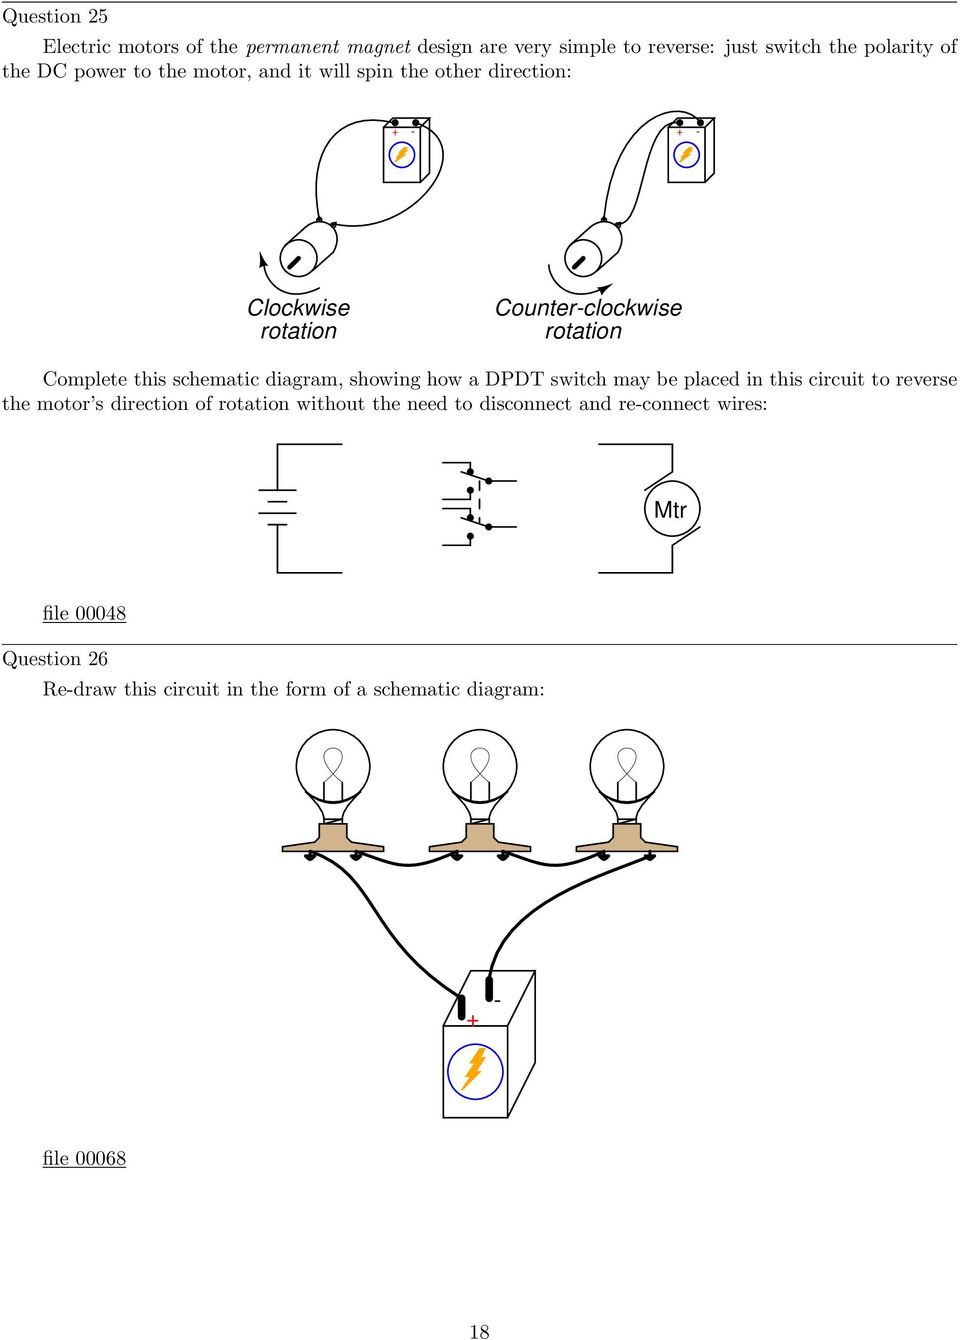 Simple Circuits Worksheet Pdf Spst And Ptm Switch Diagram Showing How A Dpdt May Be Placed In This Circuit To Reverse The